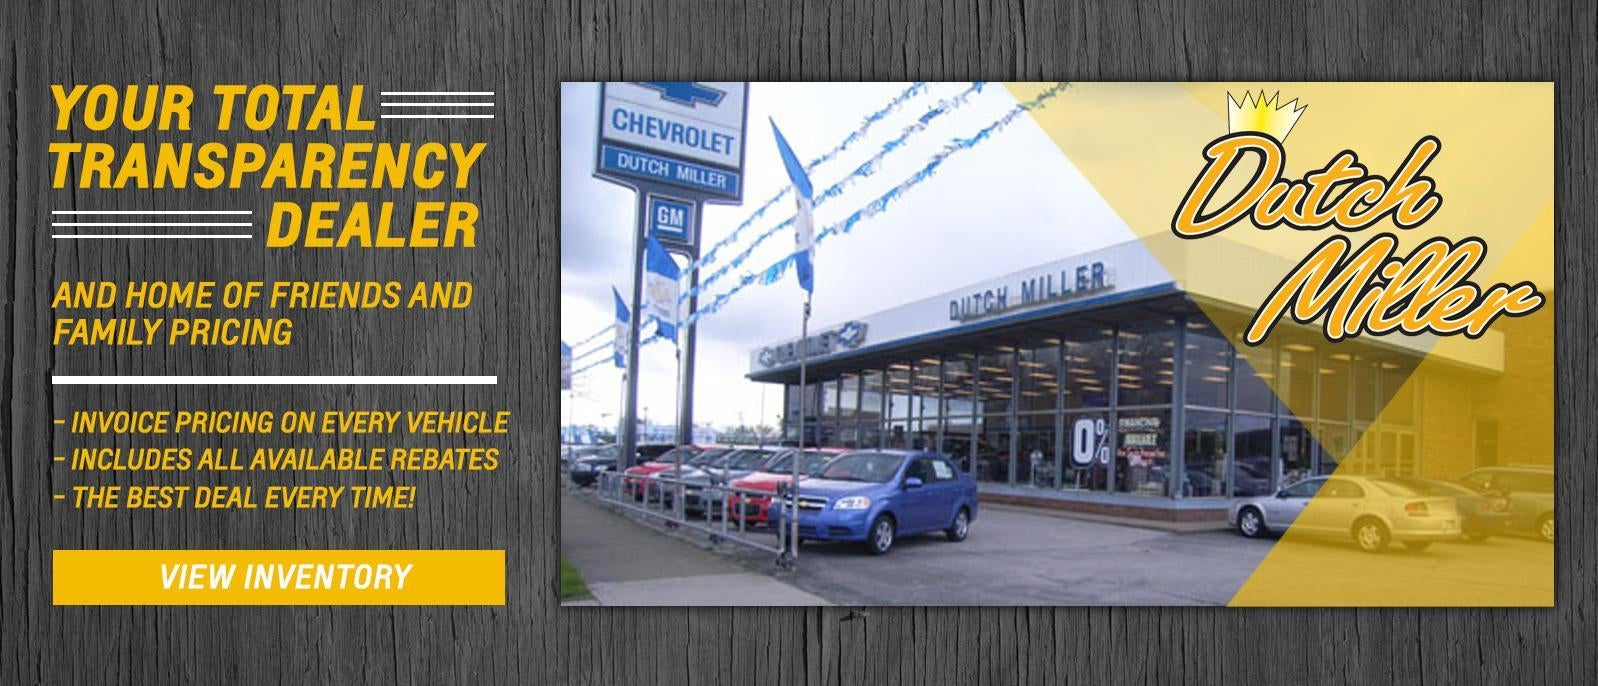 About Our Chevrolet Dealership Huntington Wv Chevrolet Dealer In Huntington Wv New And Used Chevrolet Dealership Charleston Wv Barboursville Wv Ashland Ky Wv About Chevrolet